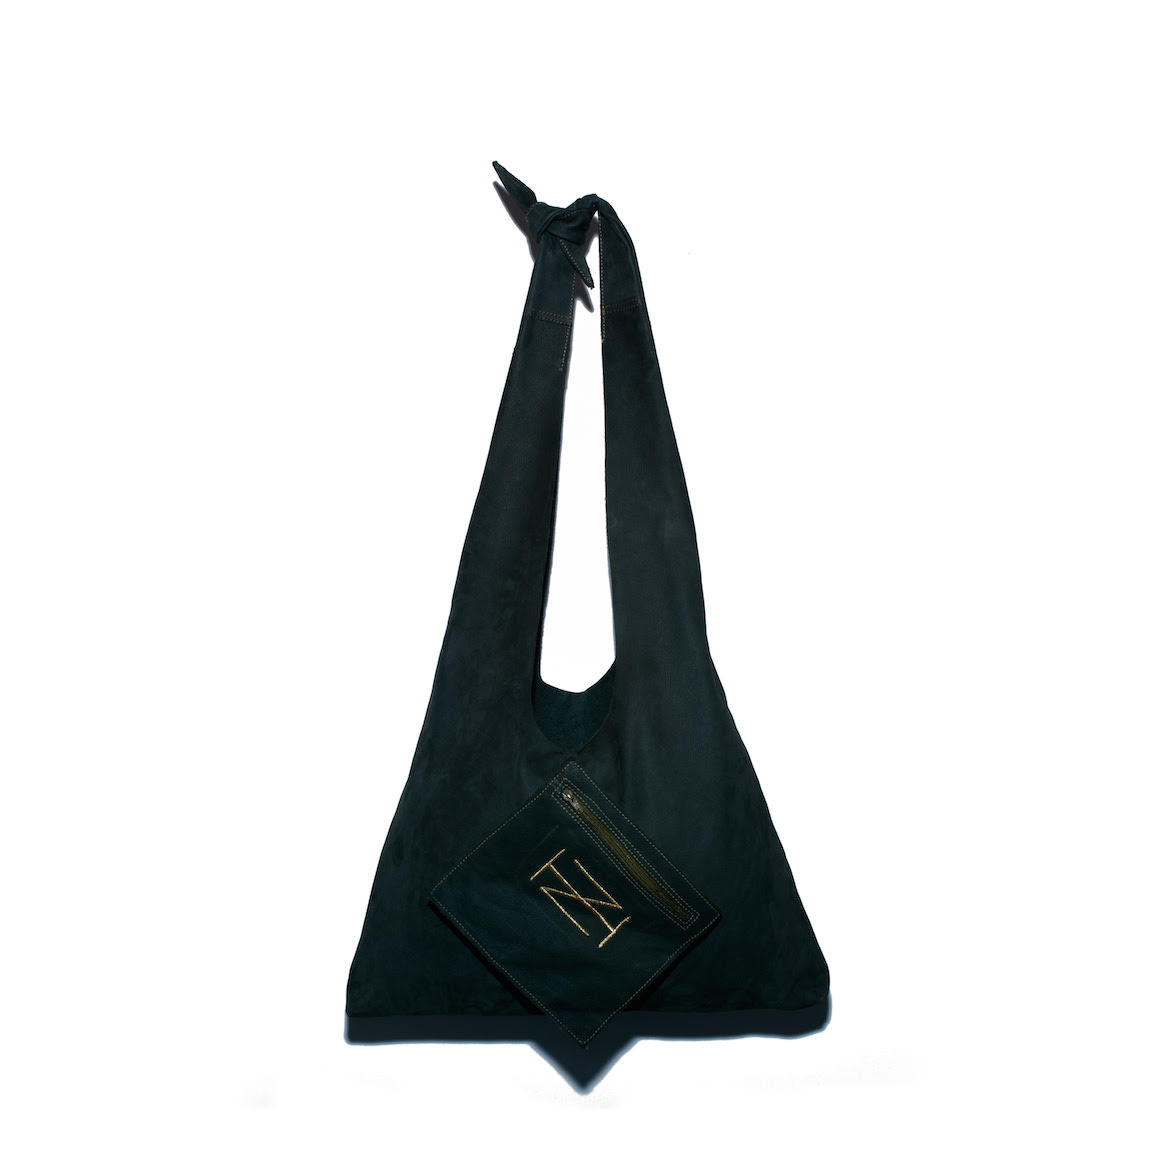 The Wardrobe Workshop x Zwina Habibi Dark Green Knot Tote